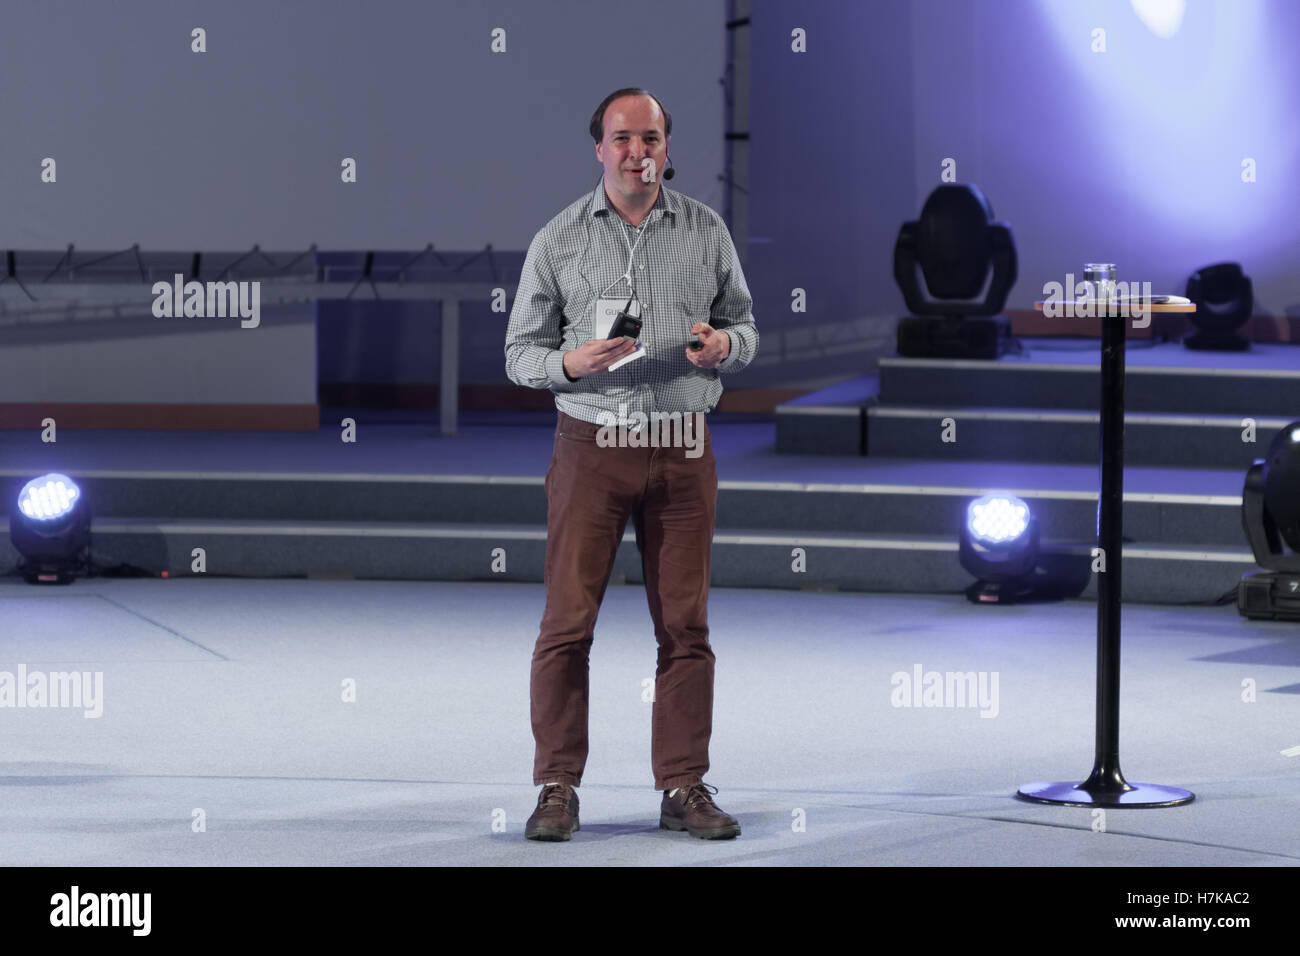 BRNO, CZECH REPUBLIC - APRIL 30, 2016:  Andrew Osmond  during talks about borderline anime  at Animefest, anime - Stock Image